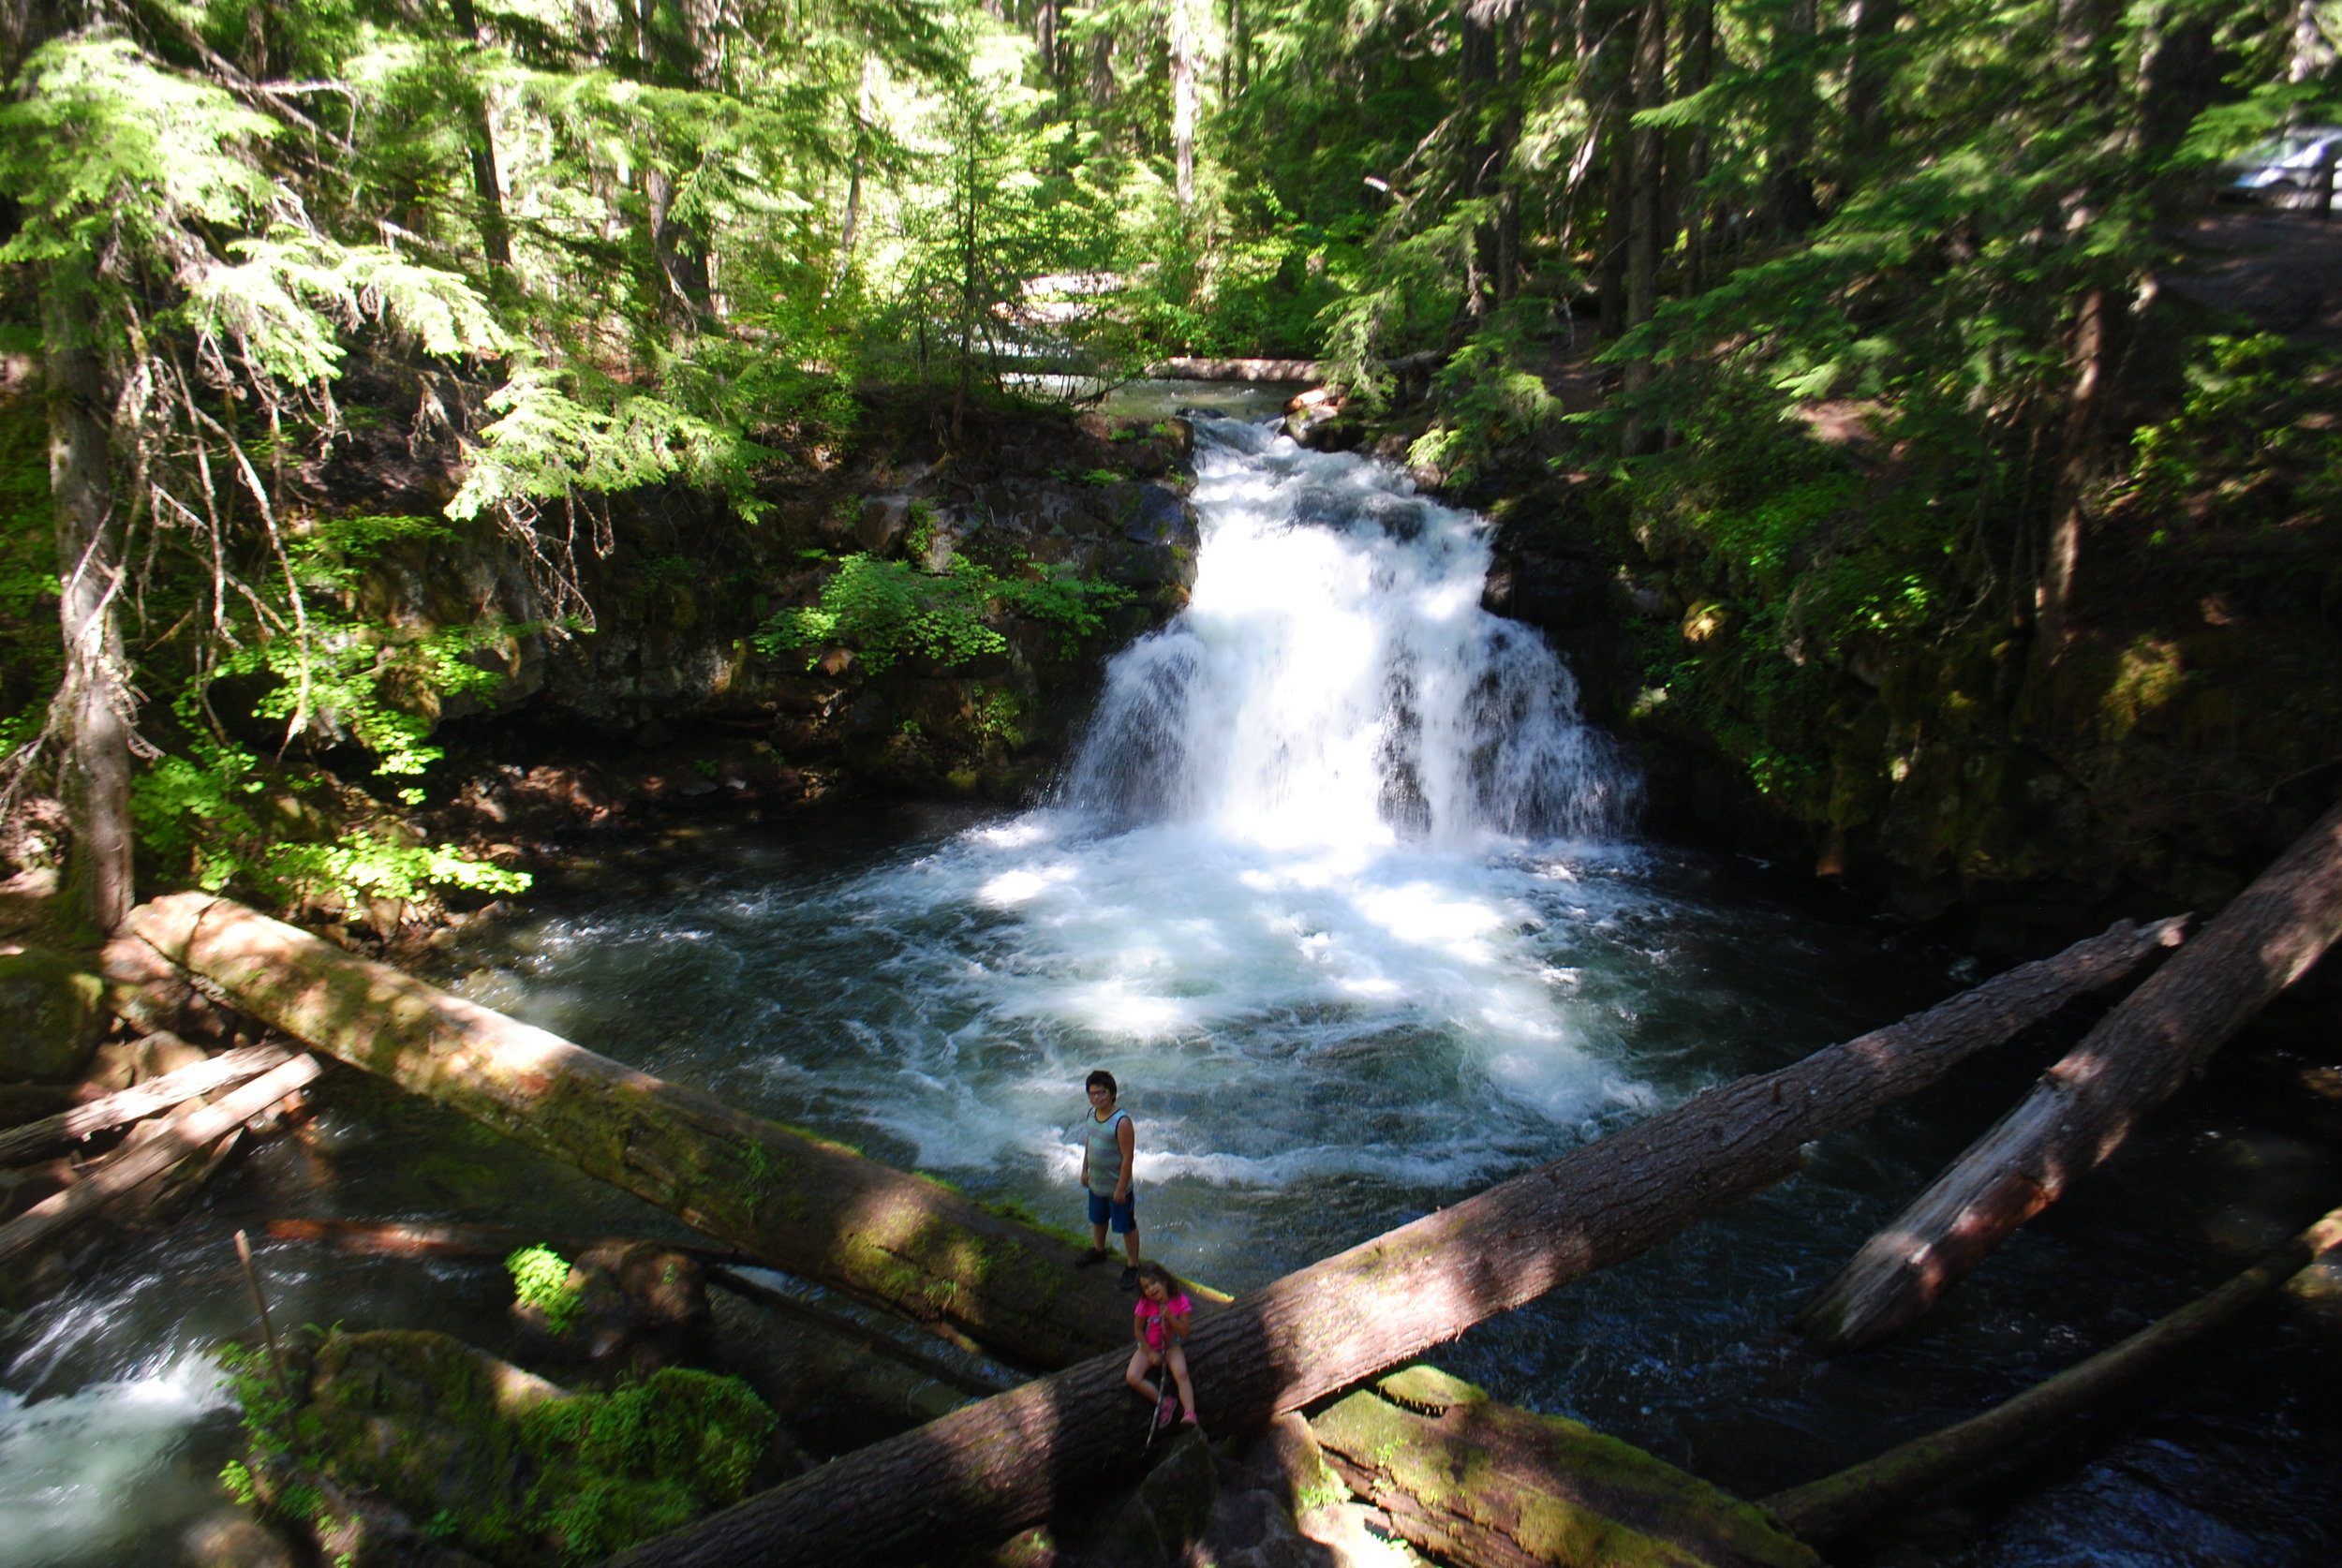 FOUR WATERFALLS, ONE DAY - HIKING ADVENTURES WITH KIDS - What to do in Southern Oregon - Things to do - Douglas County - Whitehorse Falls